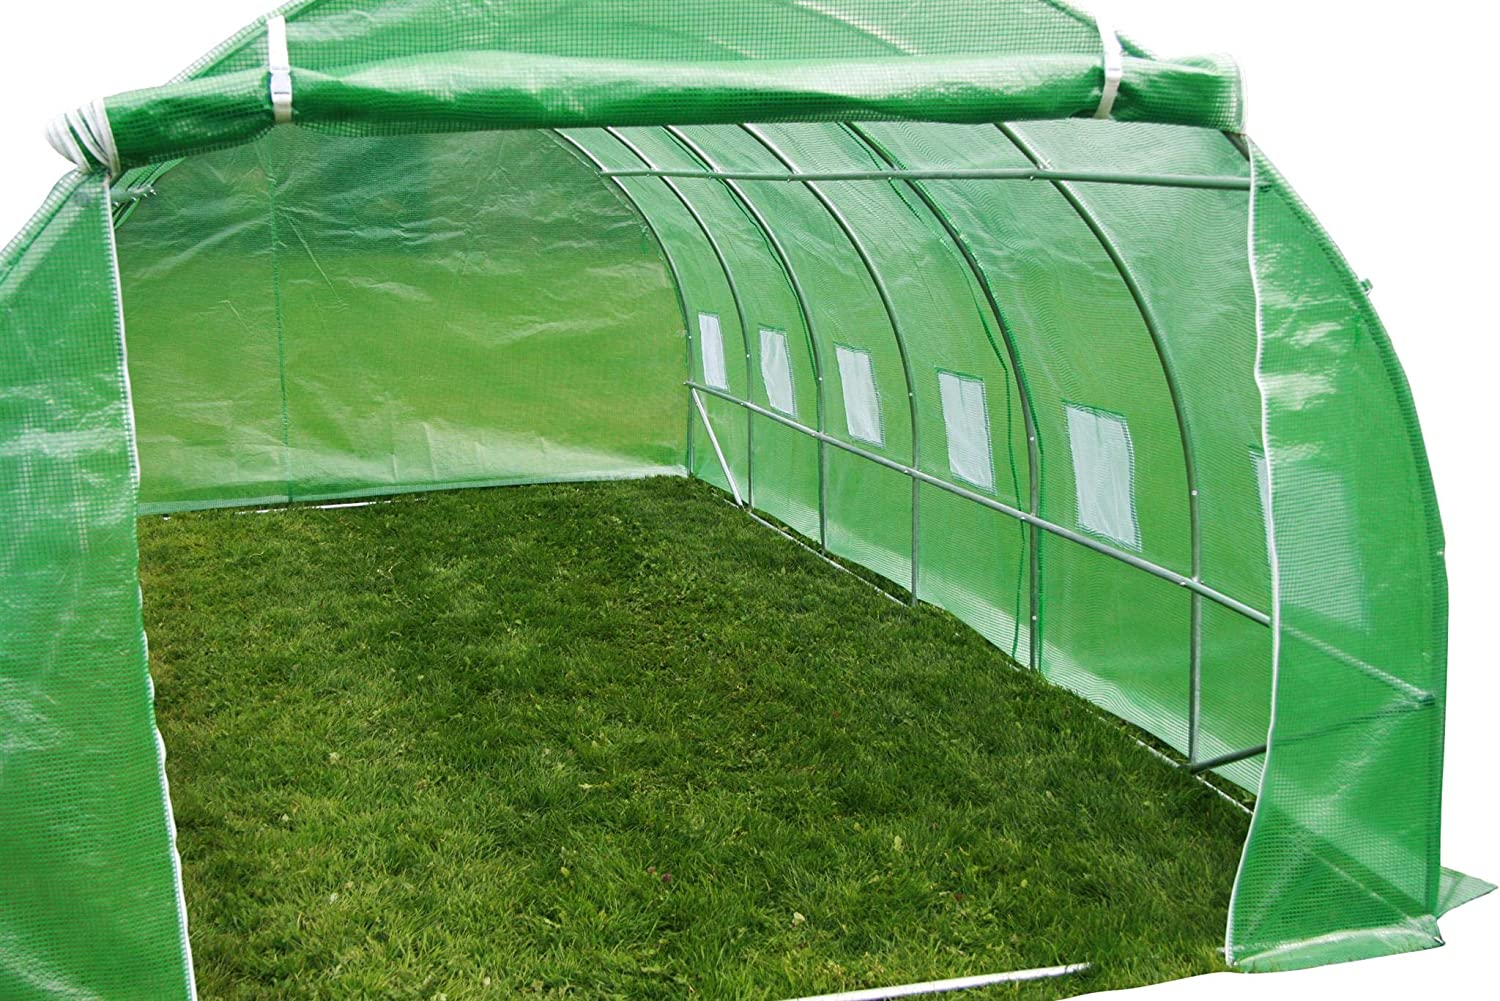 6m X 3m Polytunnel Greenhouse Strongest In Its Class A Fully